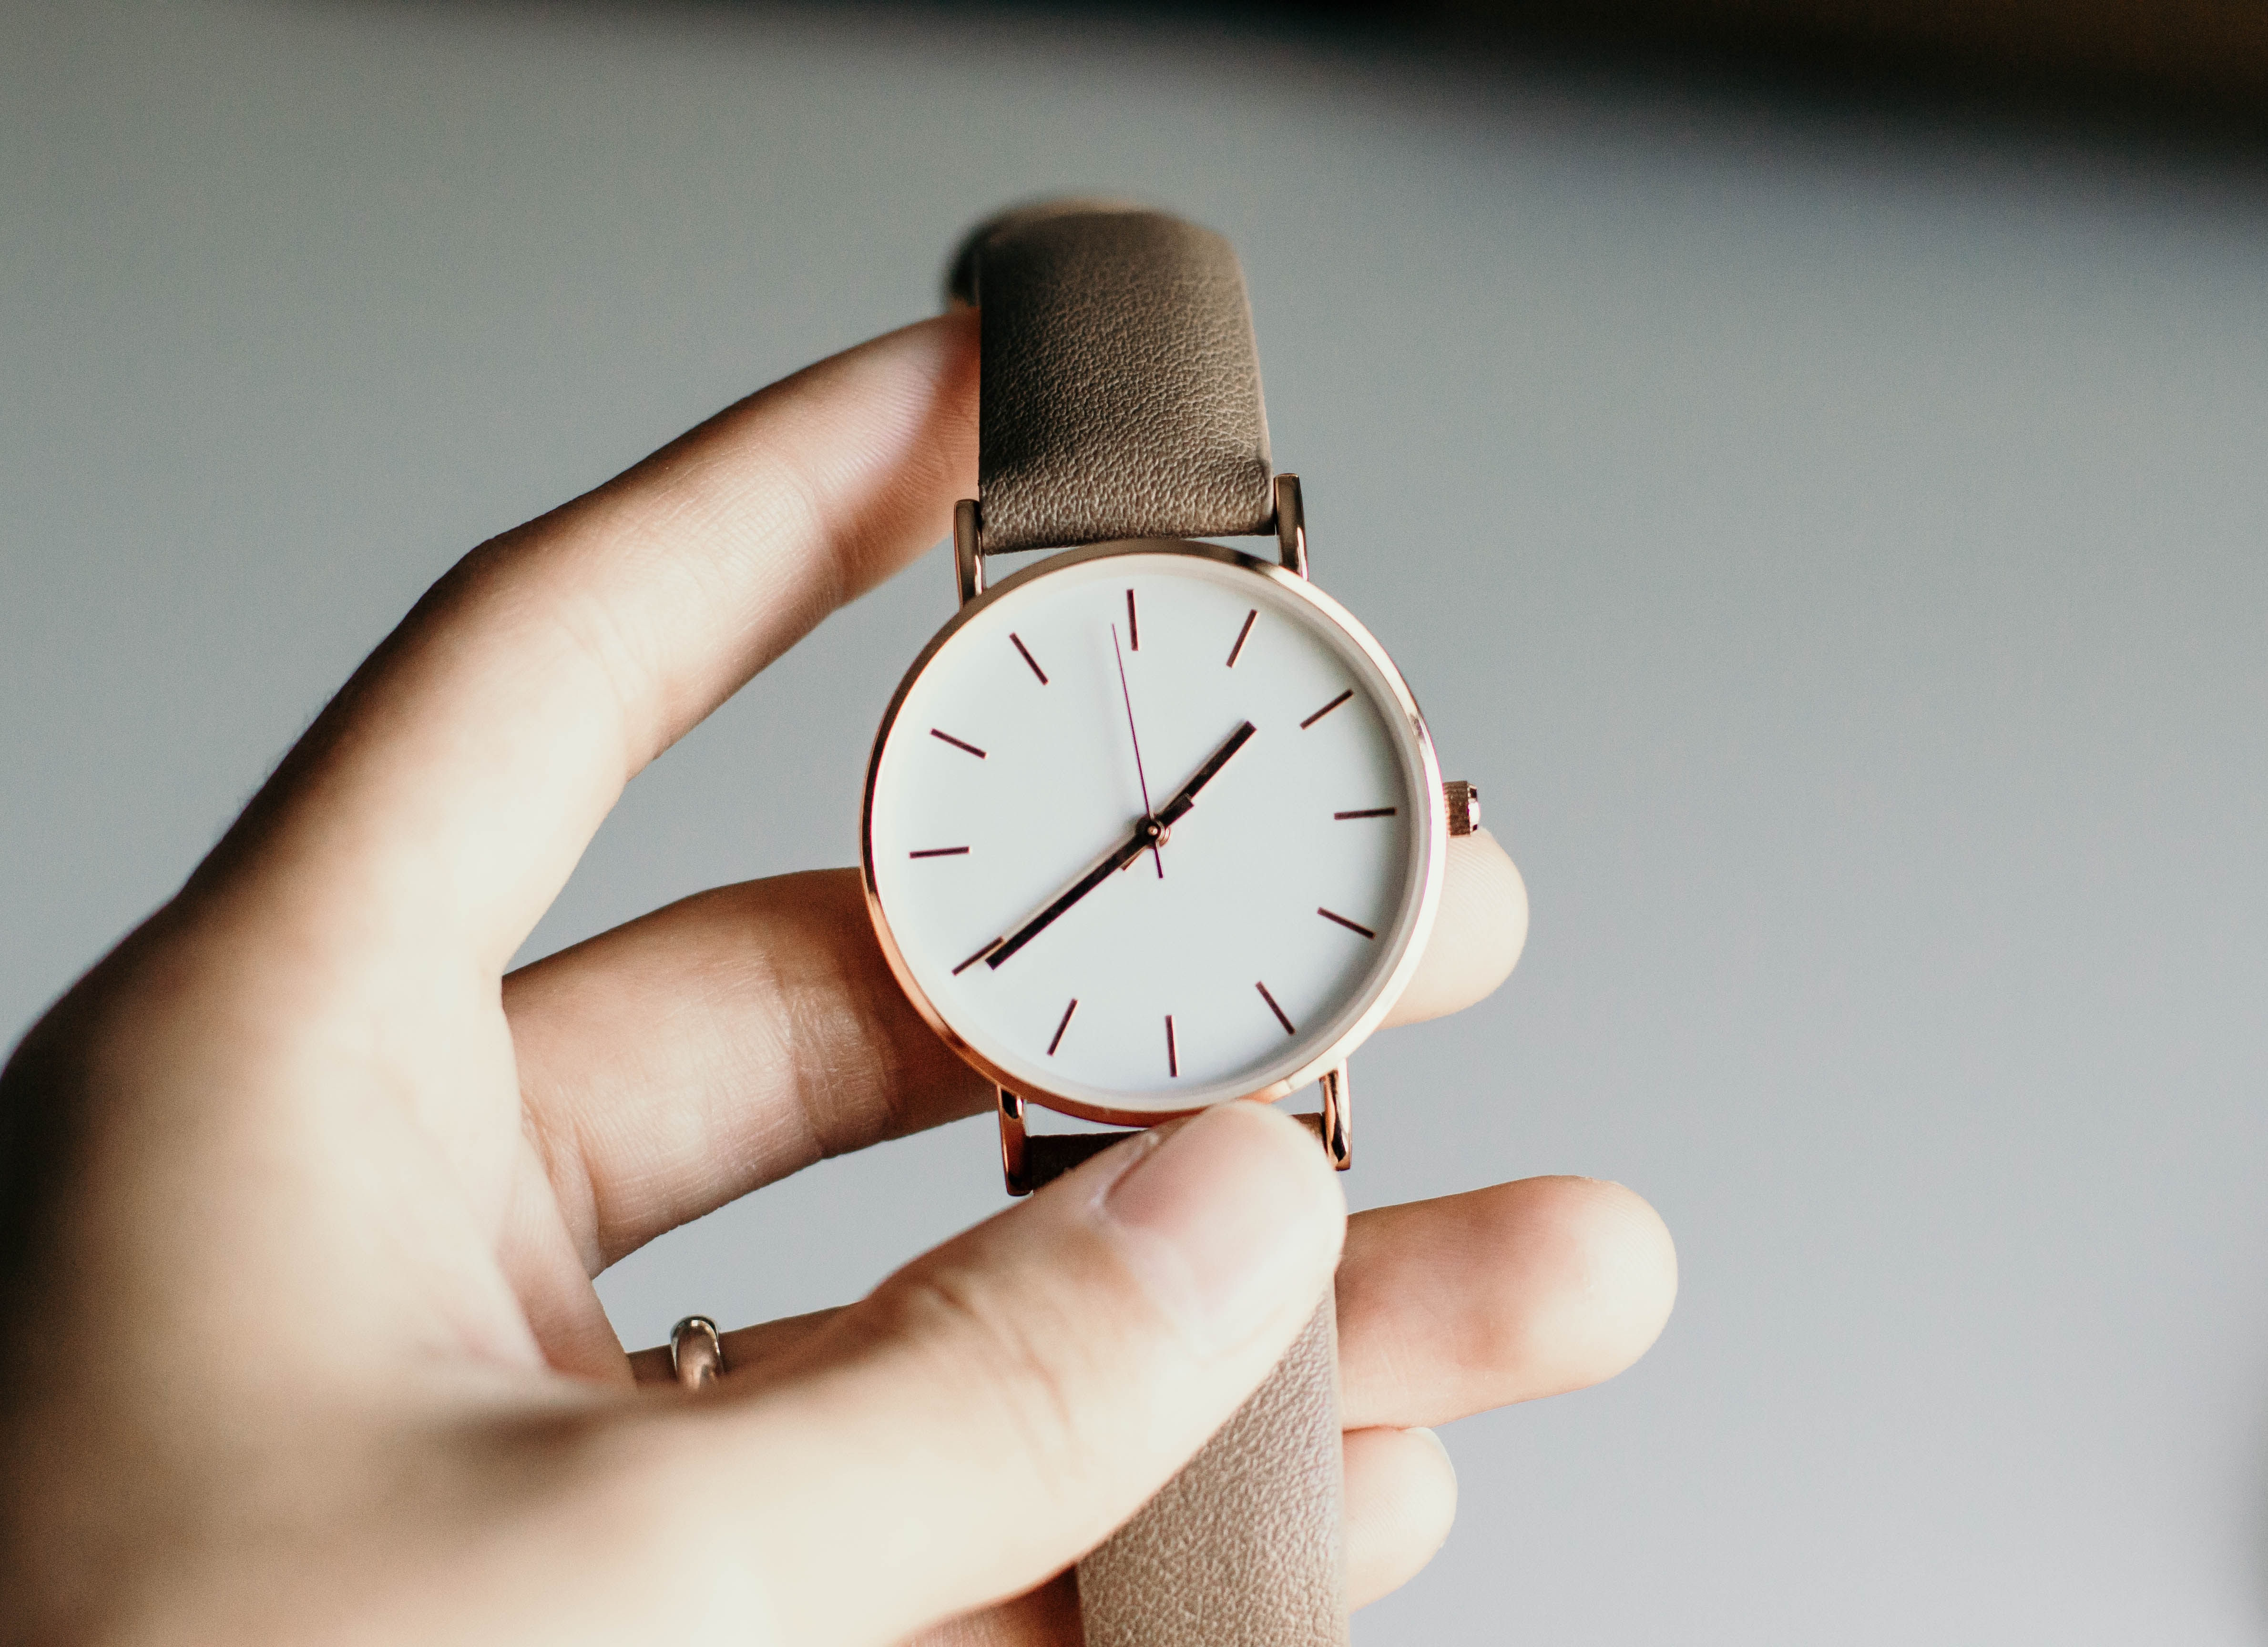 Person holding a watch in her hand.